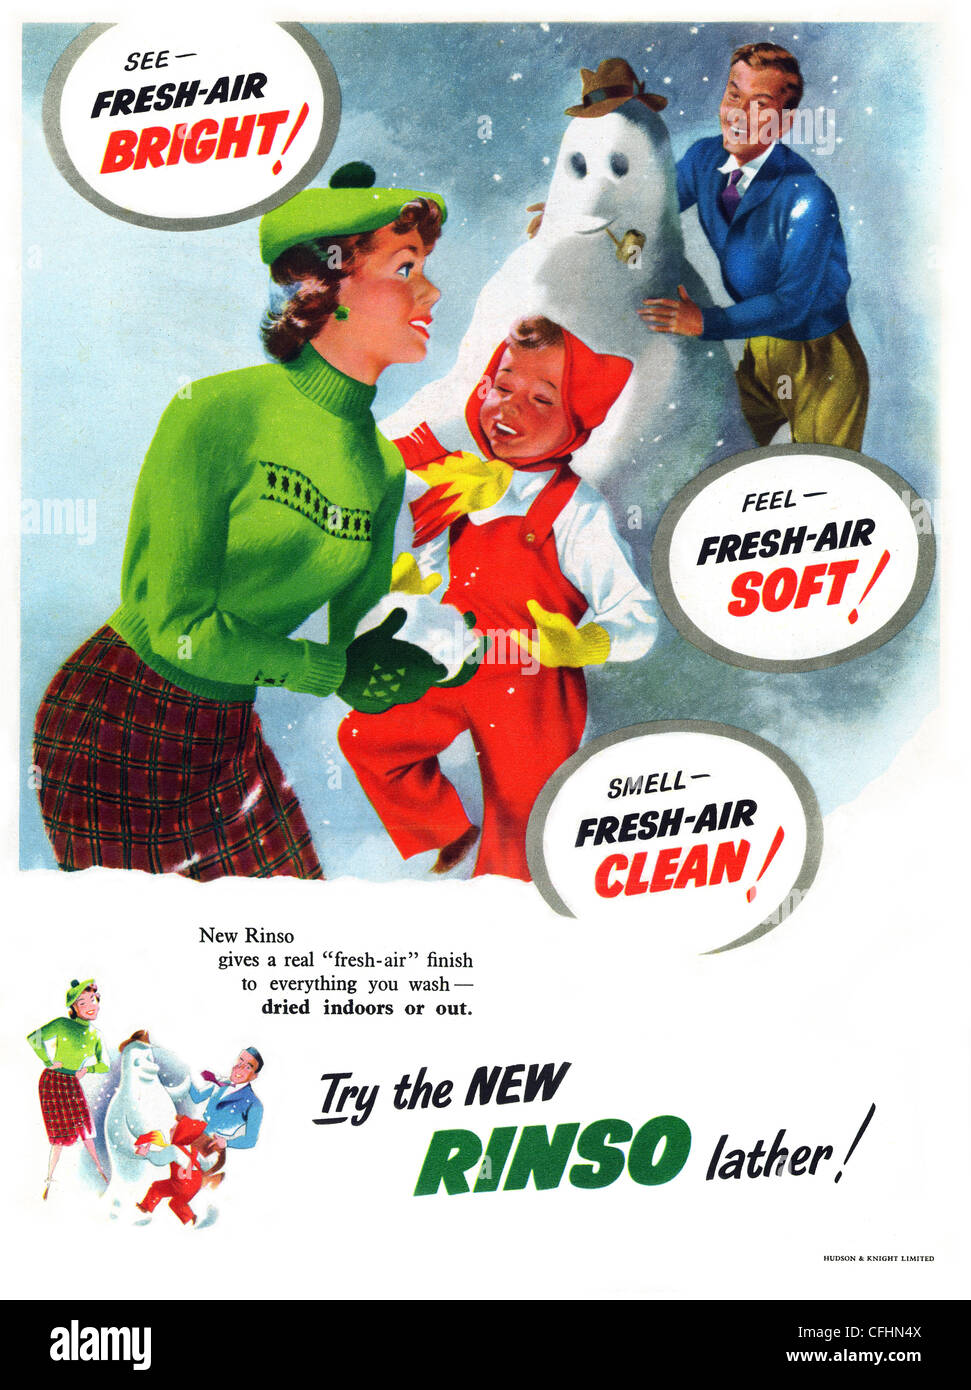 Rinso washing powder advert from 1952, a brand owned by Unilever (Lever Brothers) - Stock Image